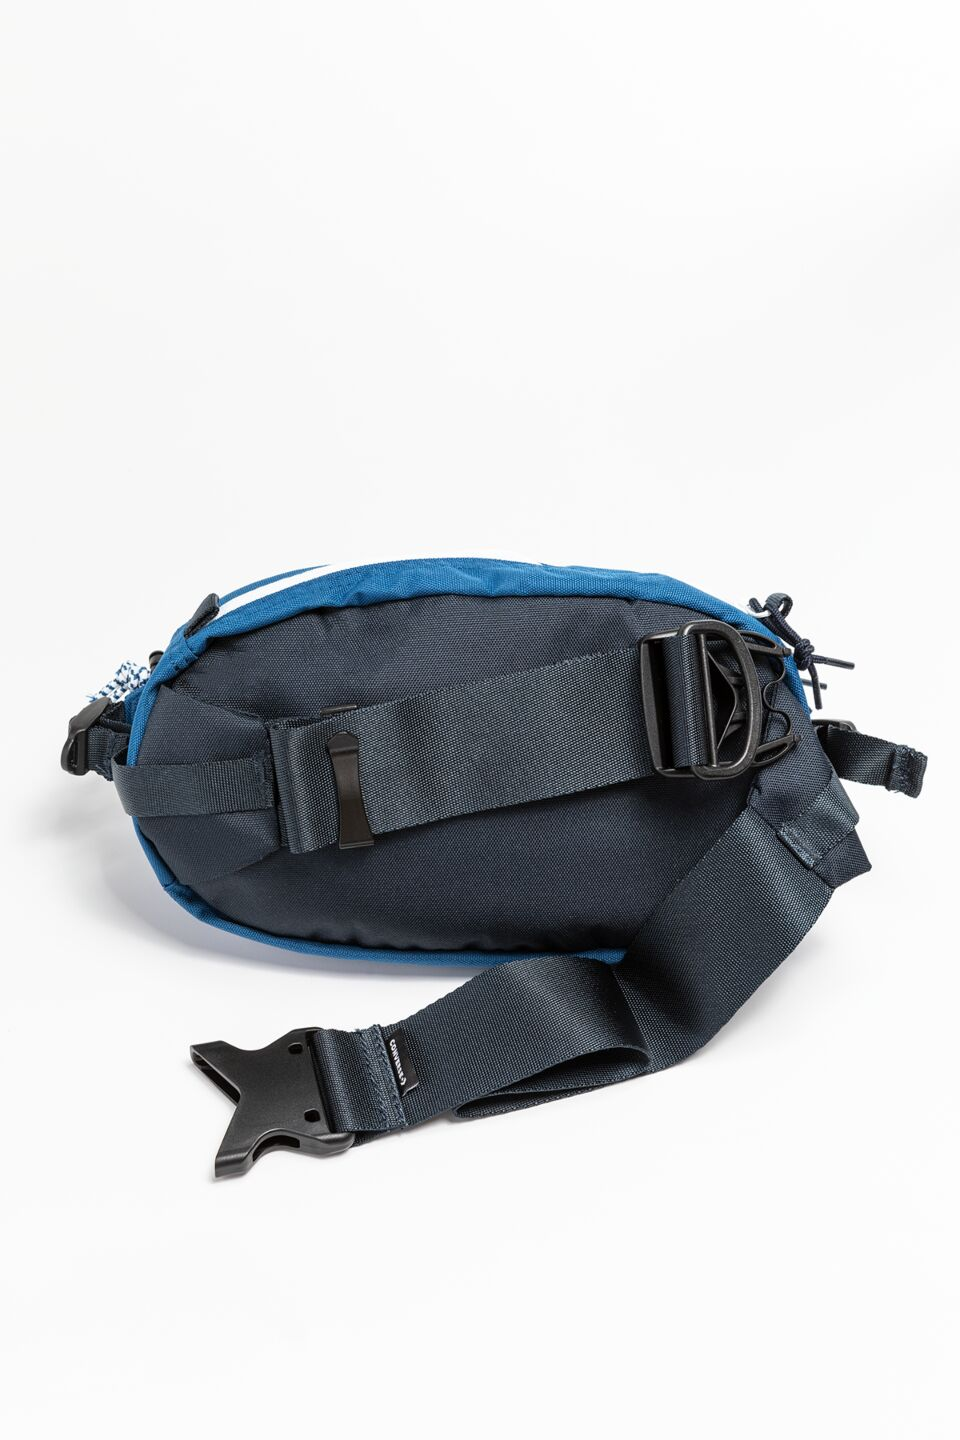 SWAP OUT SLING A09 Court Blue/Dark Obsidian